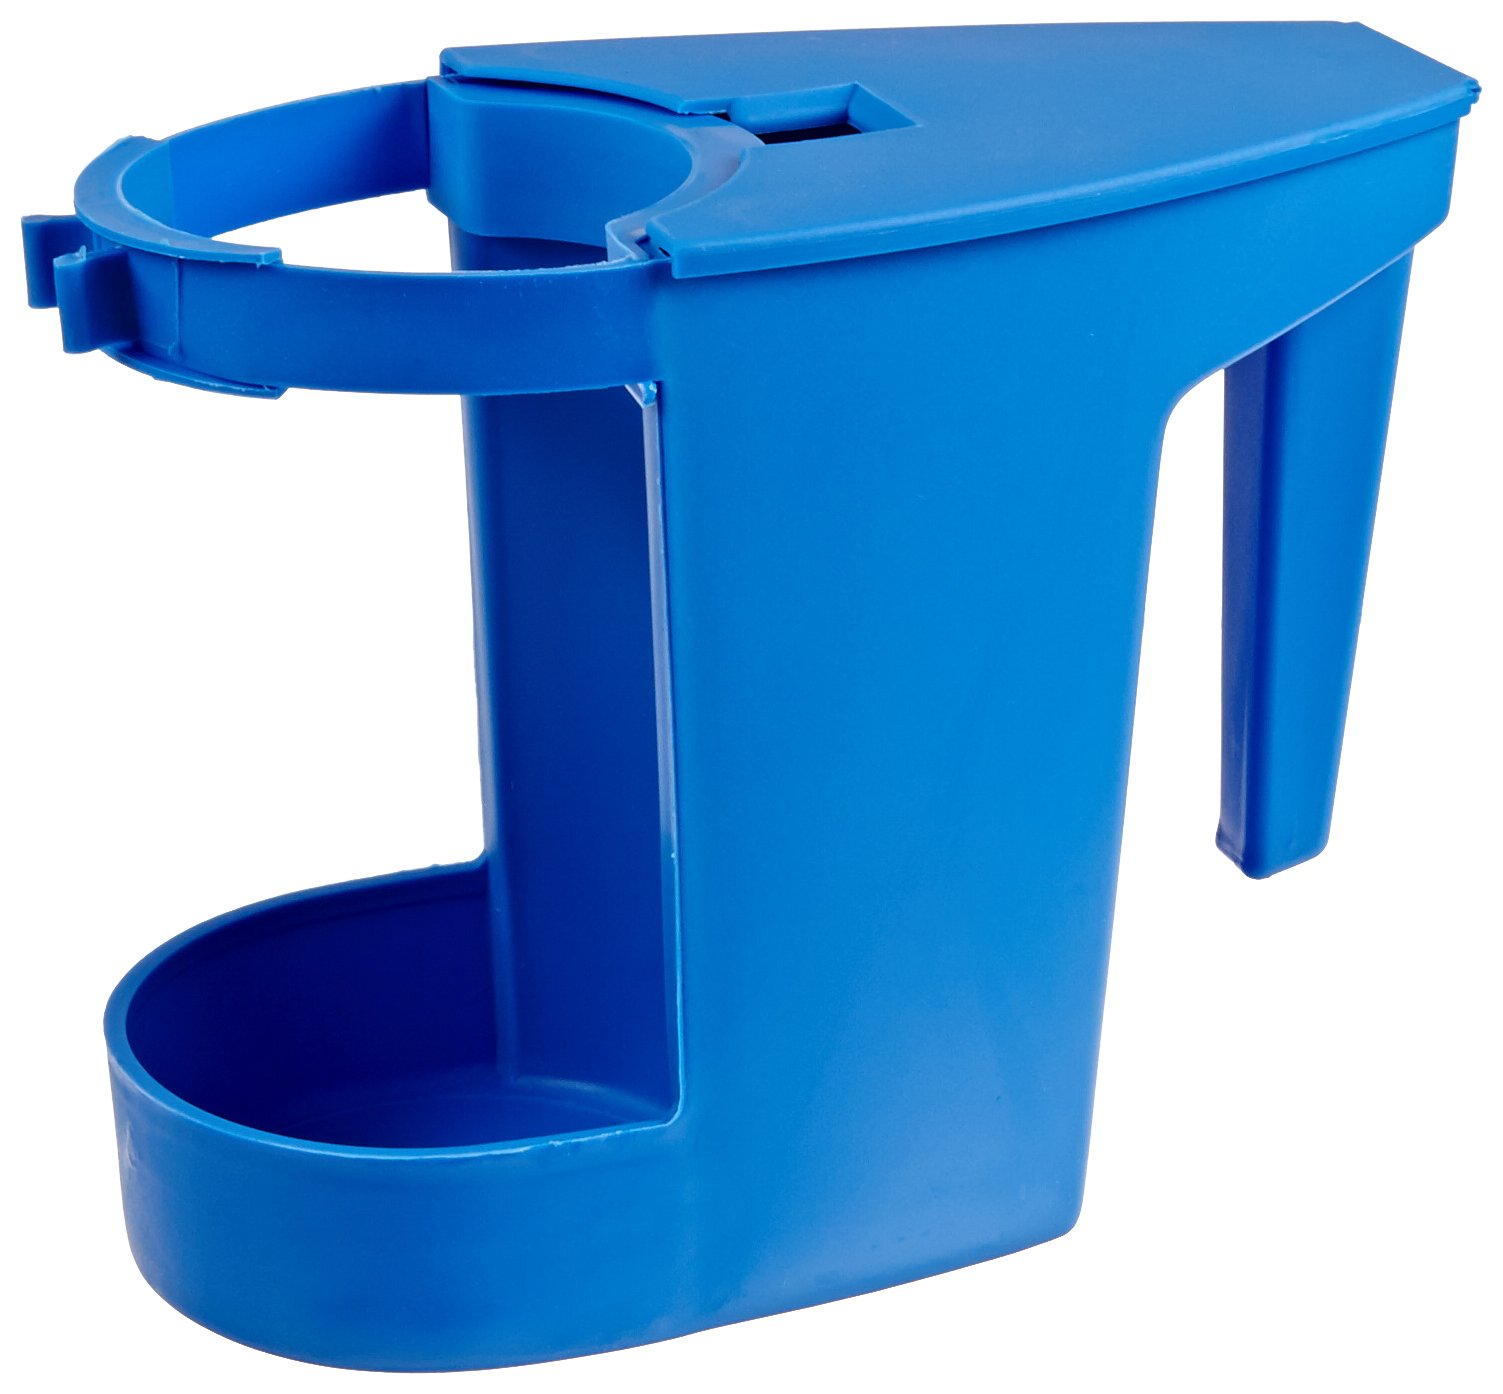 Impact 101 Super Toilet Bowl Caddy, 8'' Length x 4'' Width x 6'' Height, Blue (Case of 12) by Impact Products (Image #1)